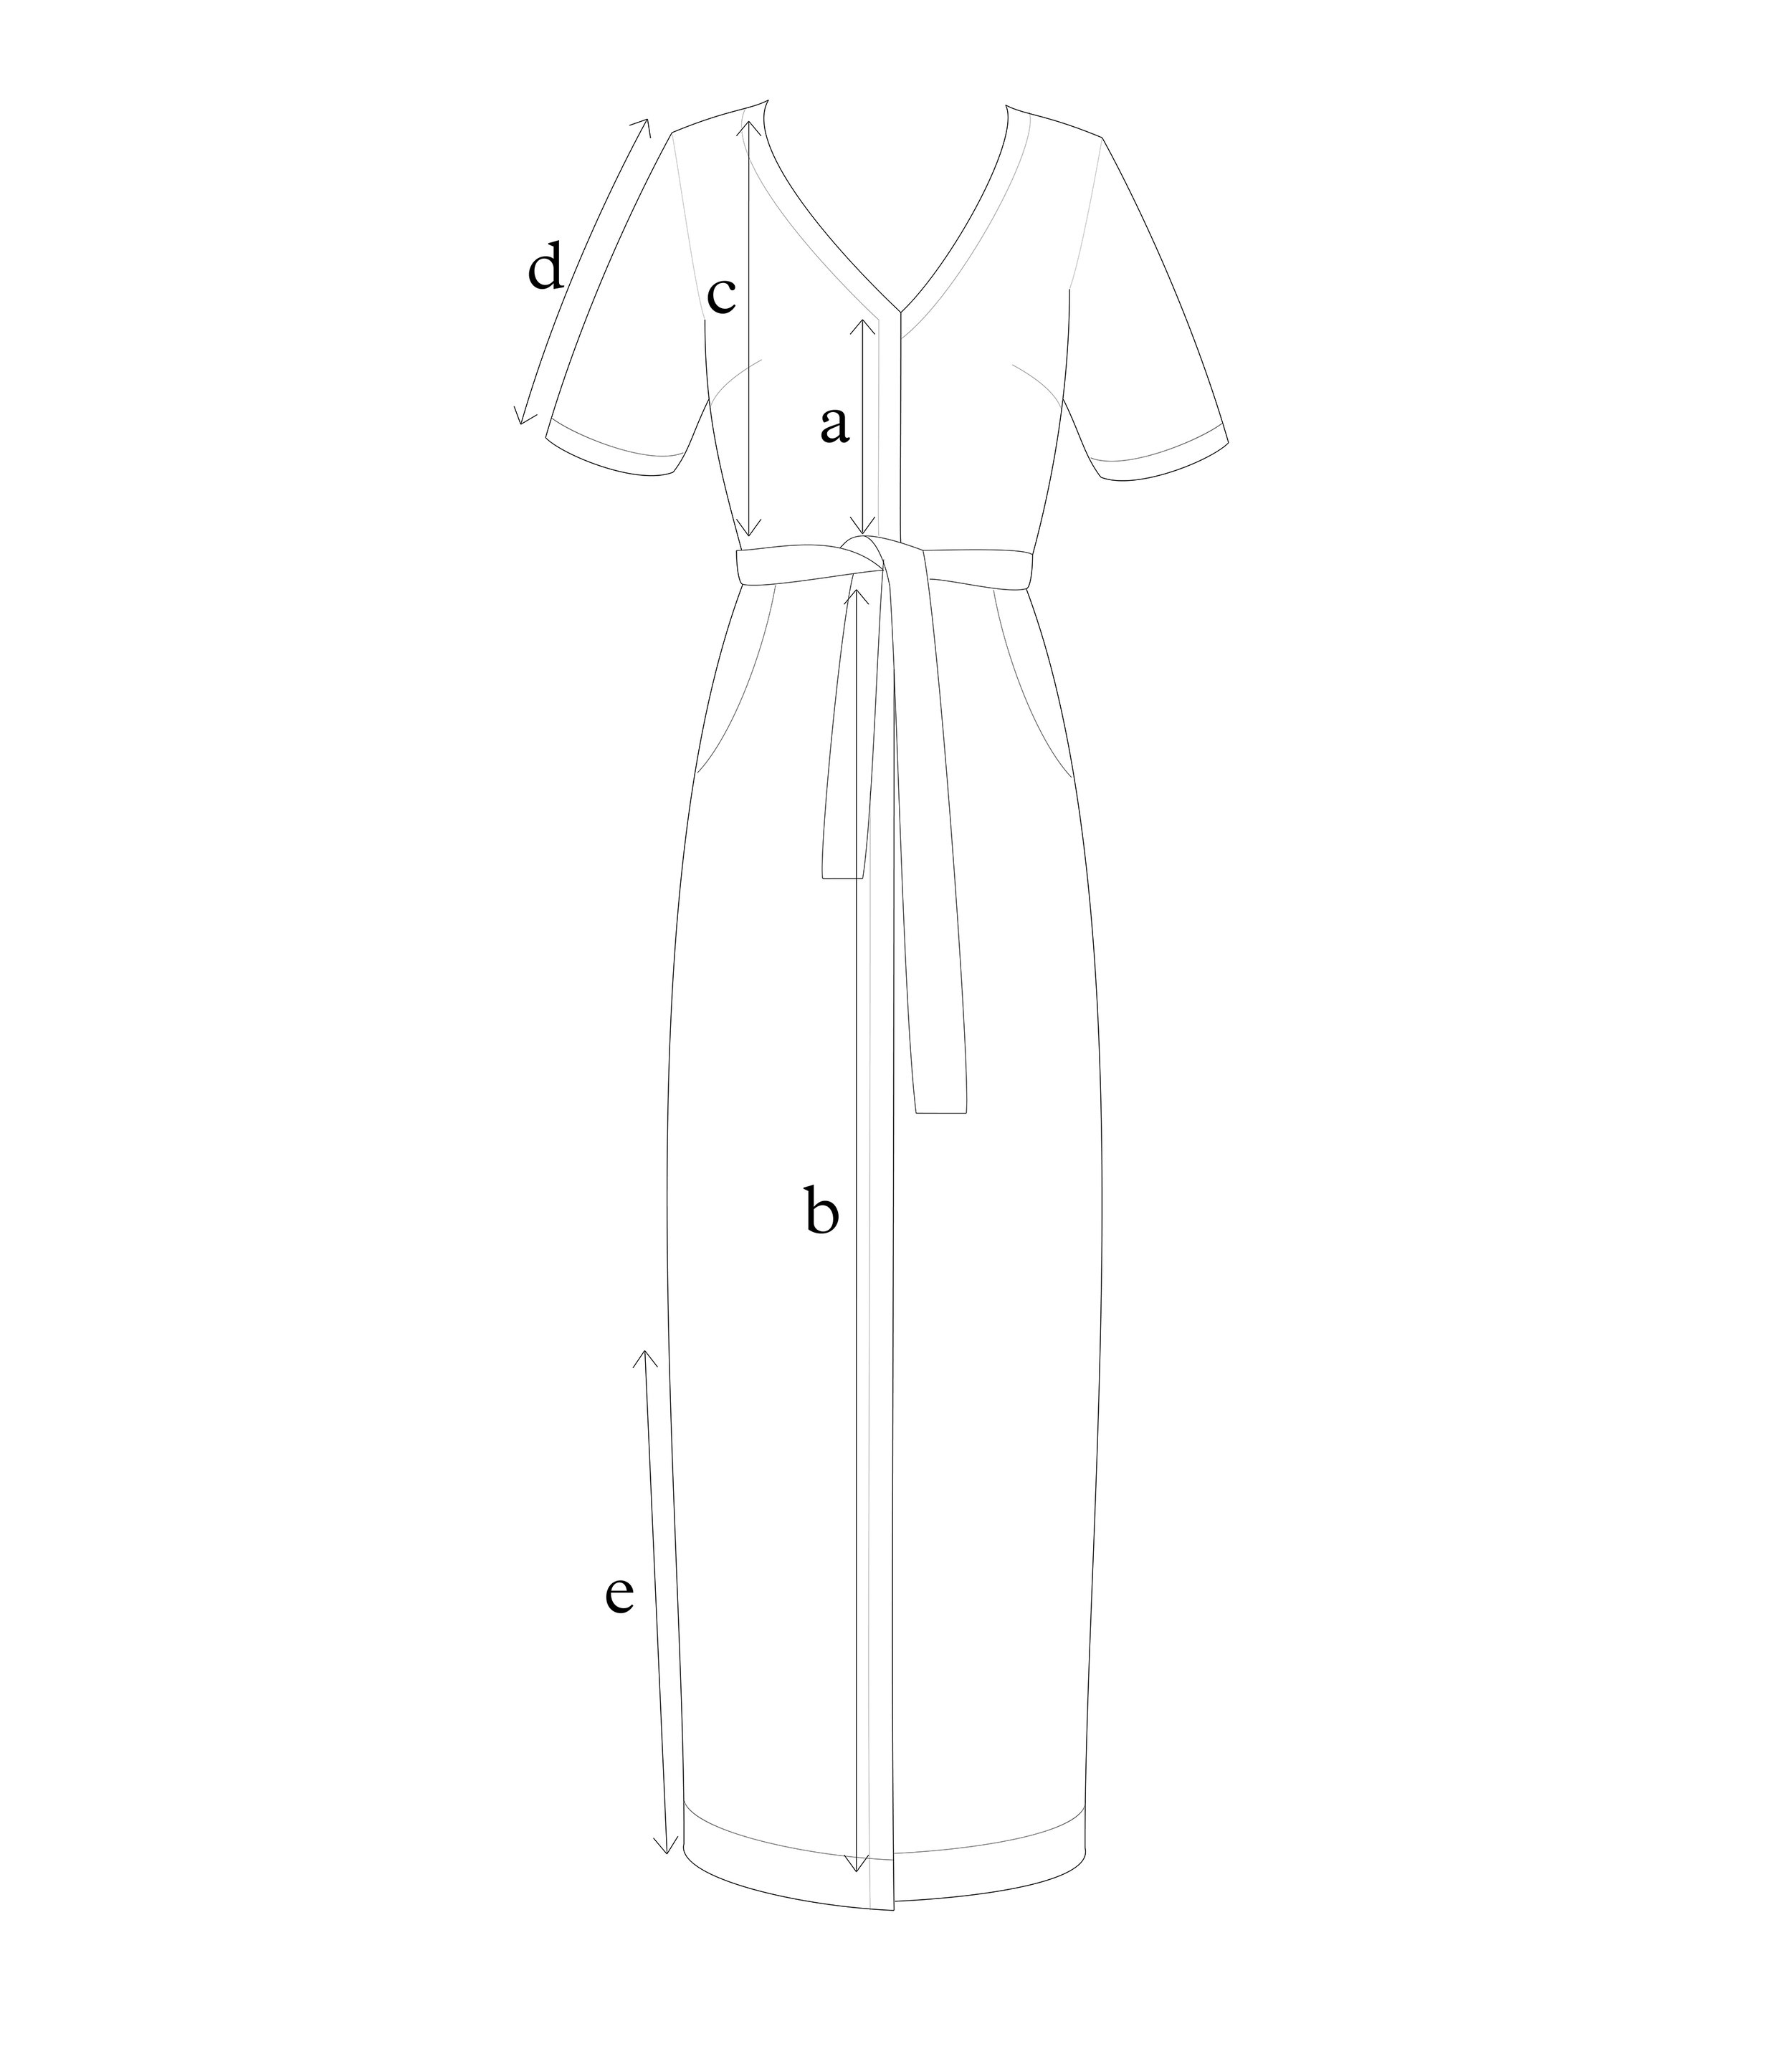 #040 dress - line drawing.jpg